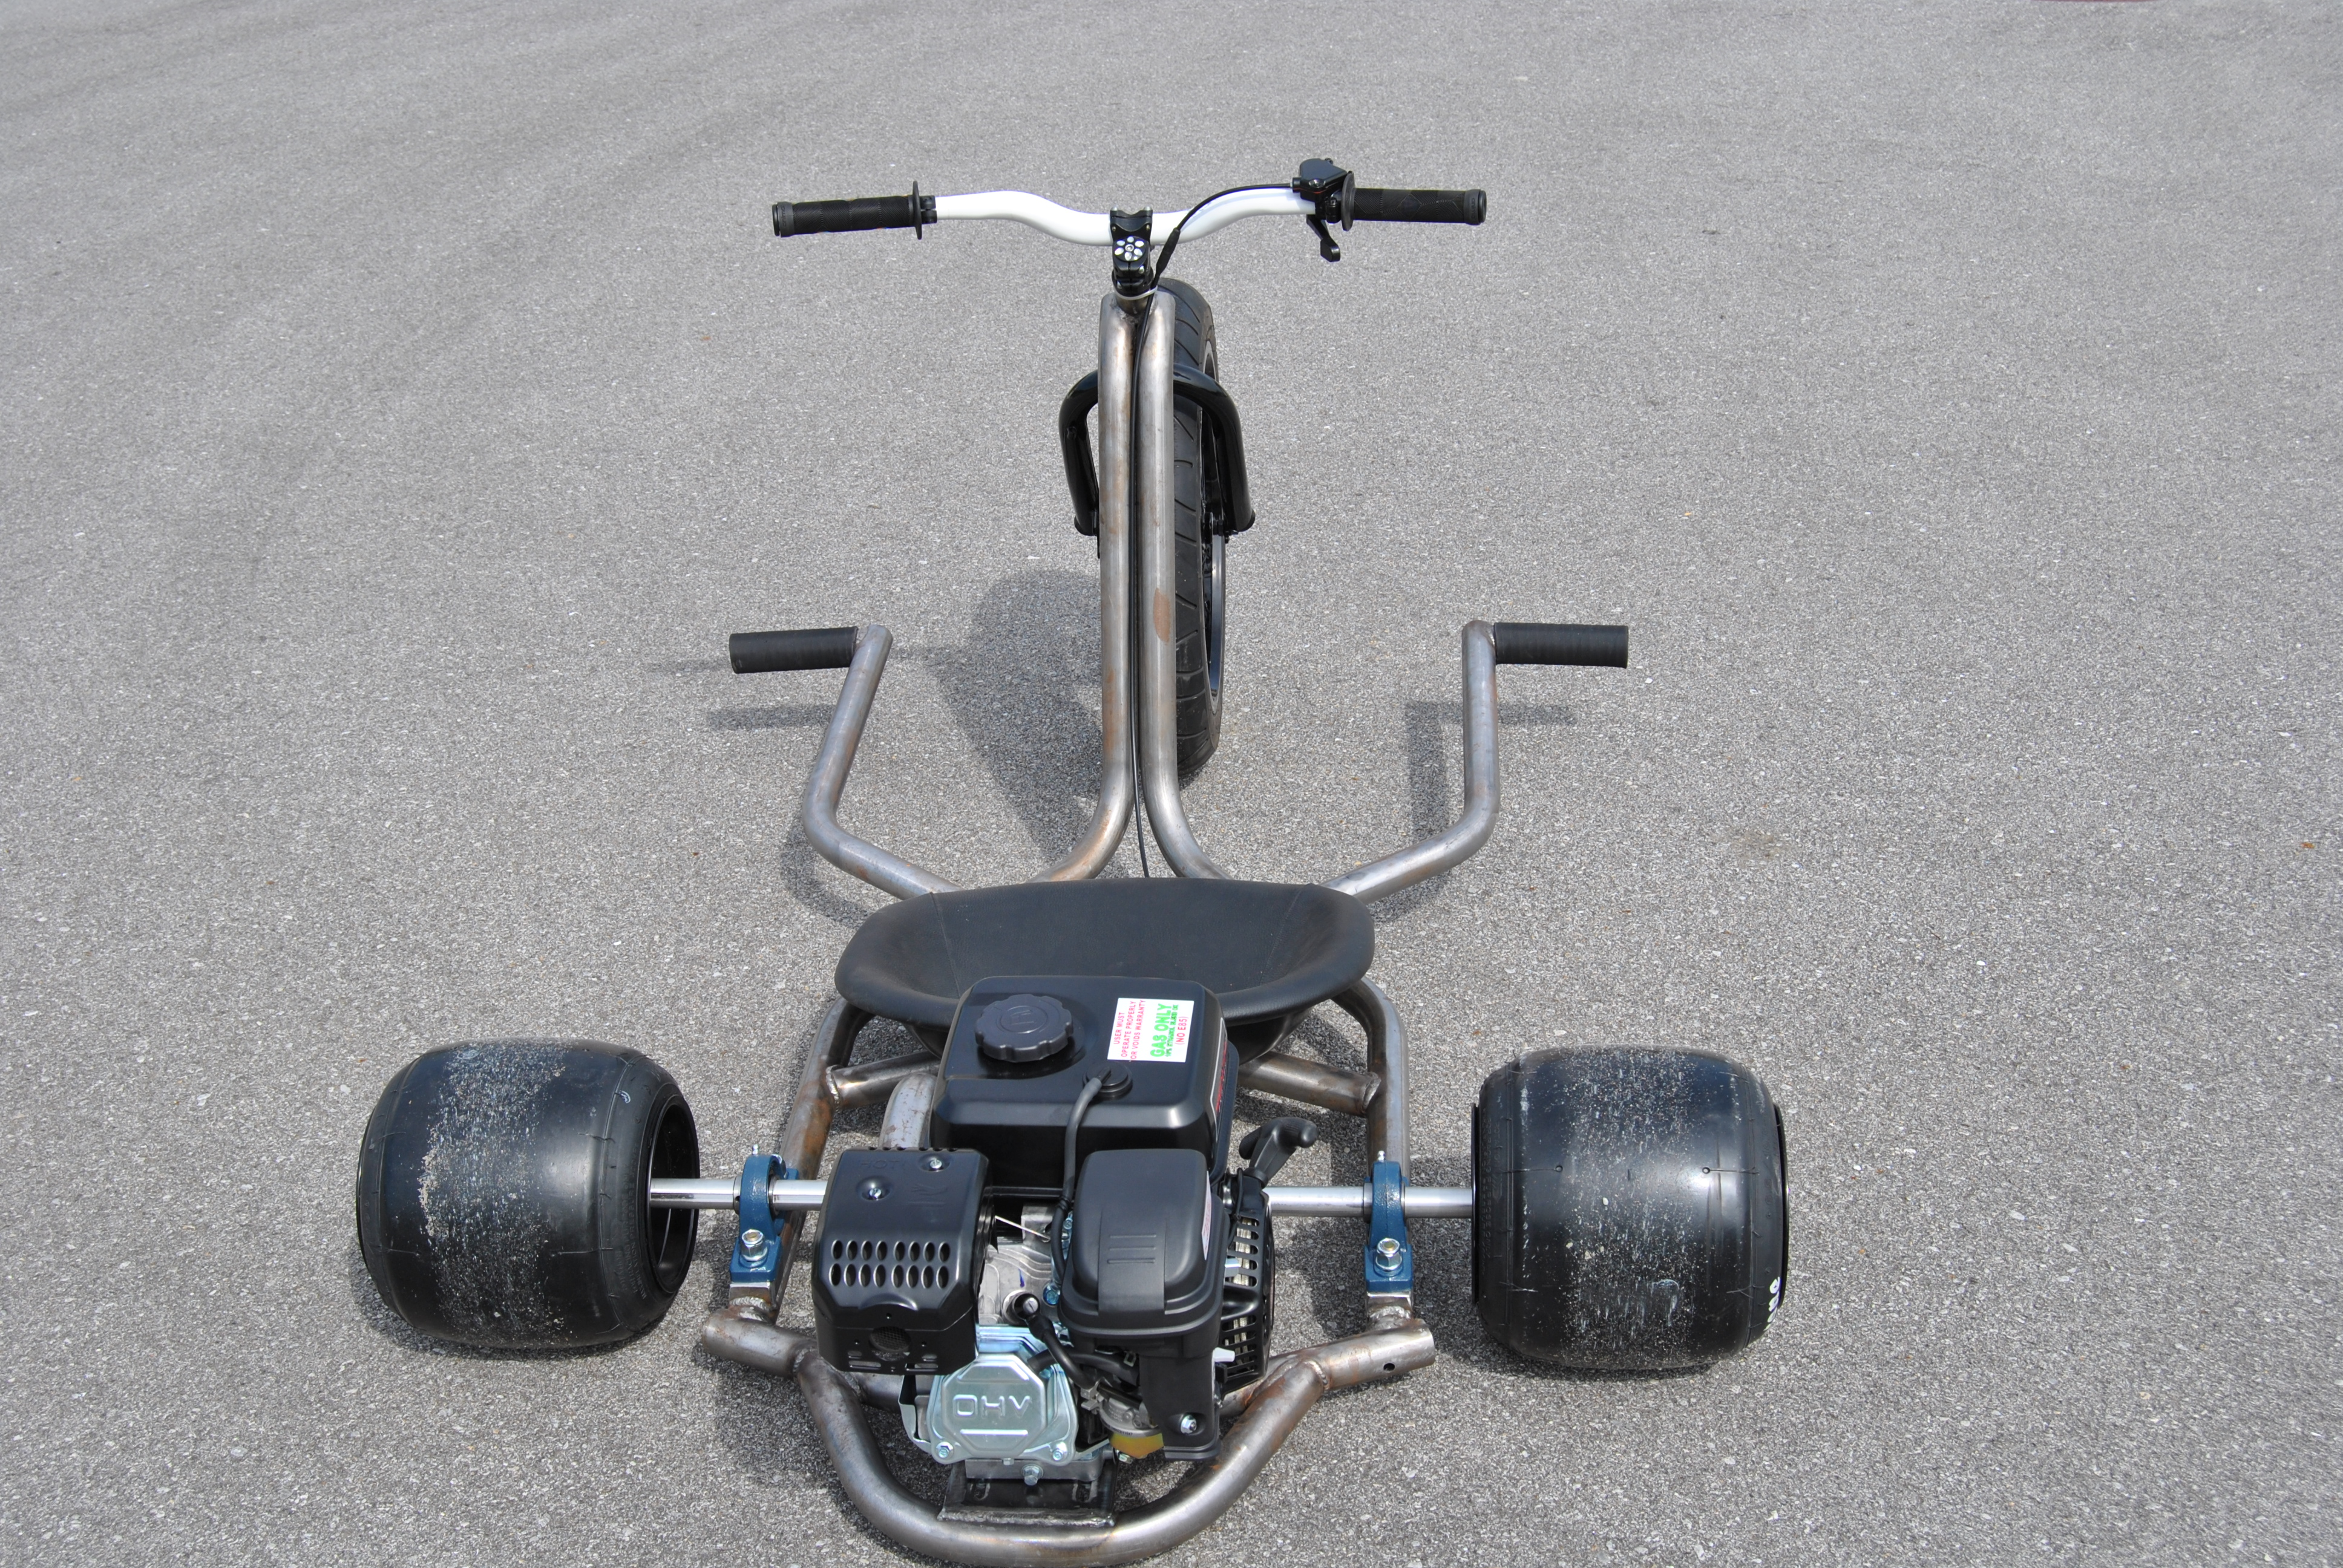 Seriously Considering Building One Of These Has Anyone On Here Done It Before If So Roughly How Much Did It Cost For The Parts